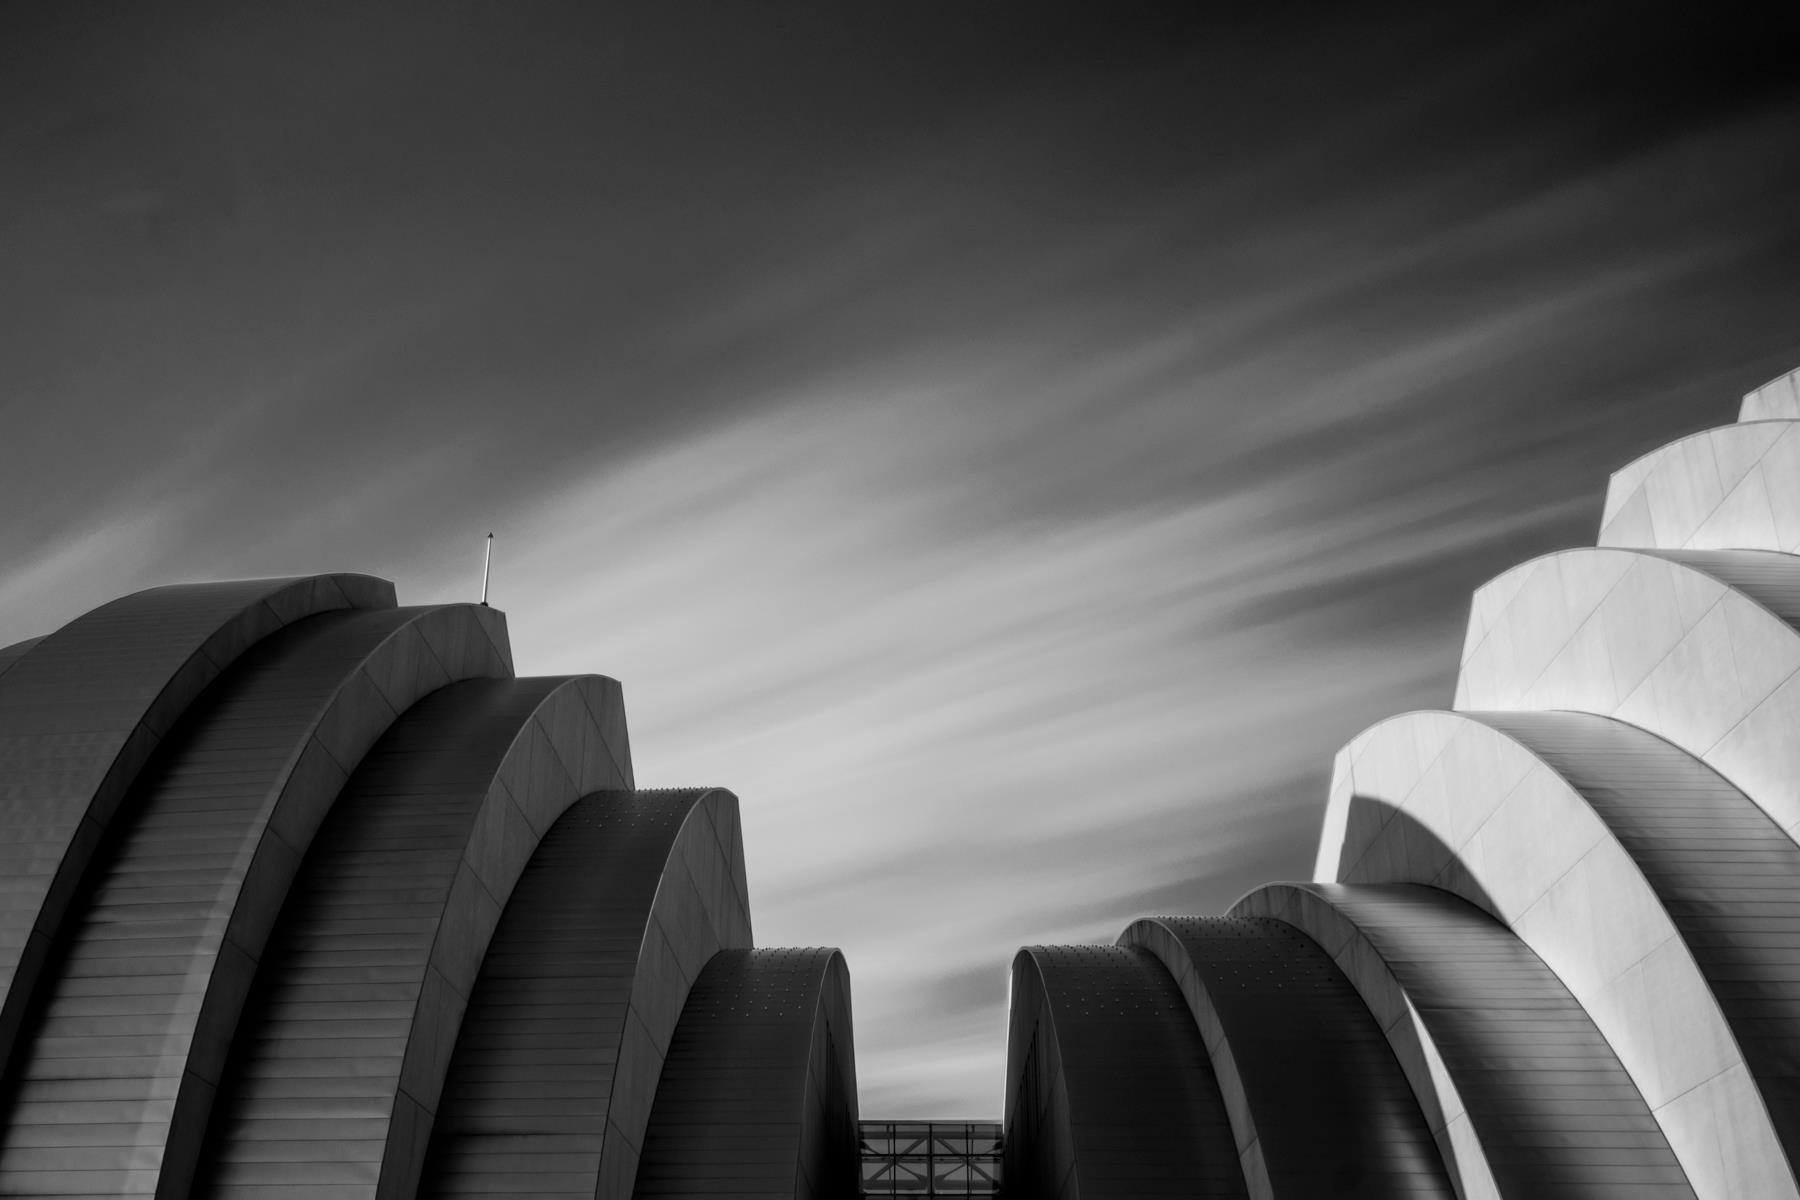 The Kauffman Center for the Performing Arts, Kansas City, Missouri